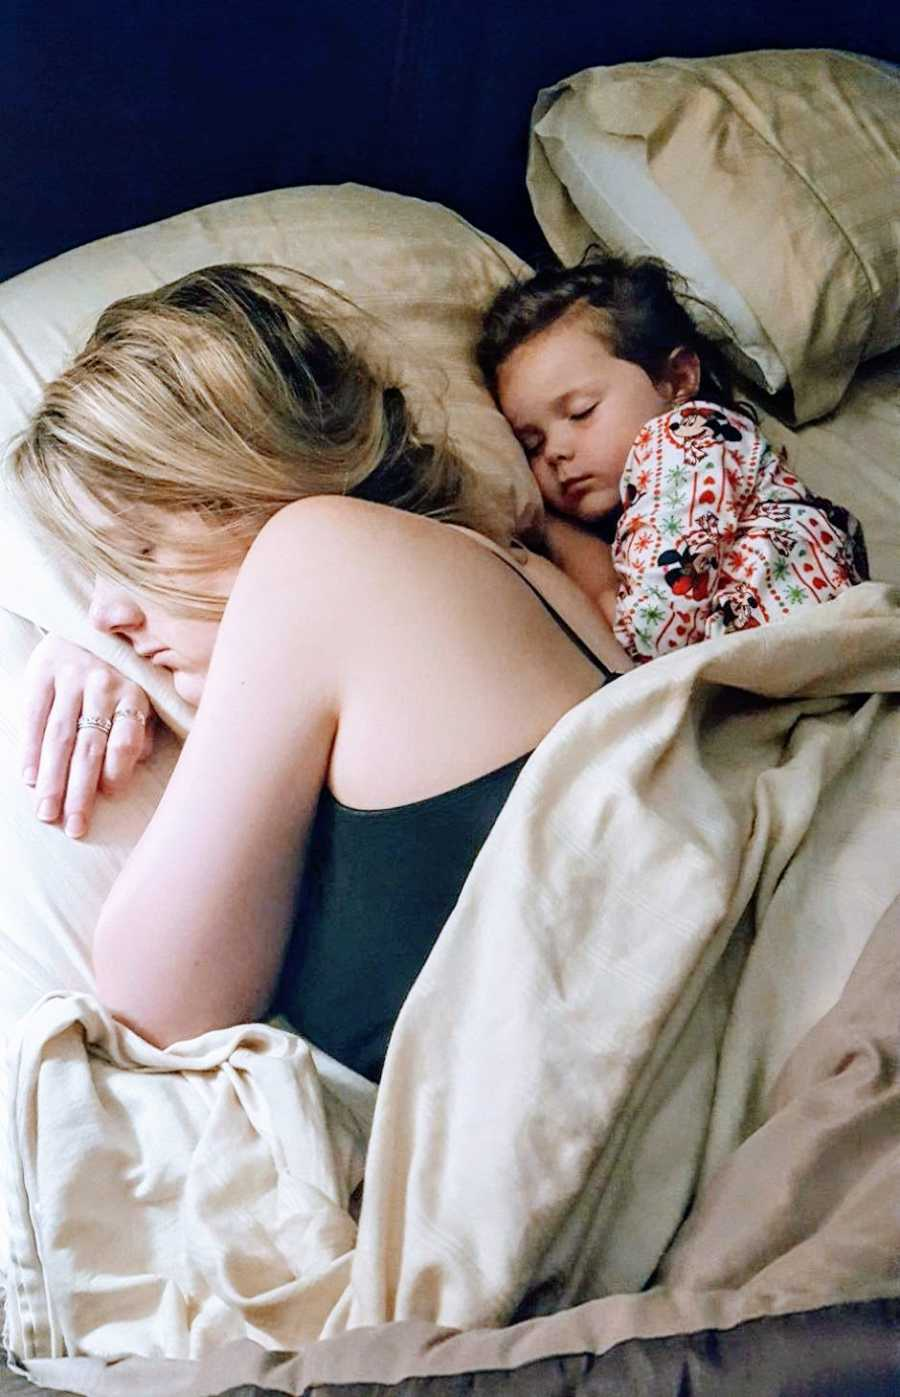 Mom shares a pillow with her daughter while they both sleep after a long day